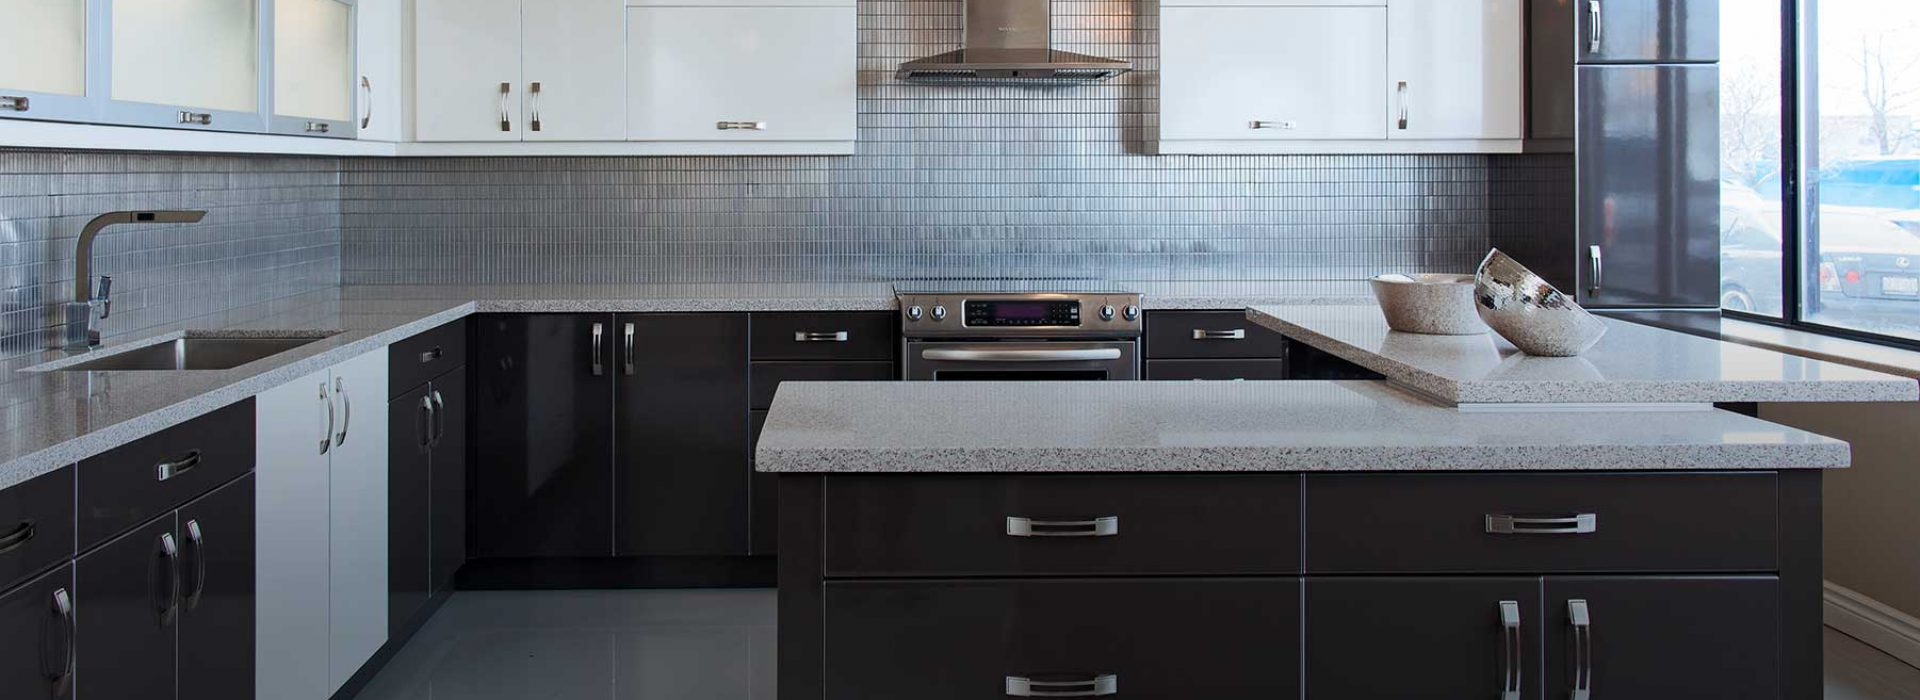 Welcome to Frendel Kitchens